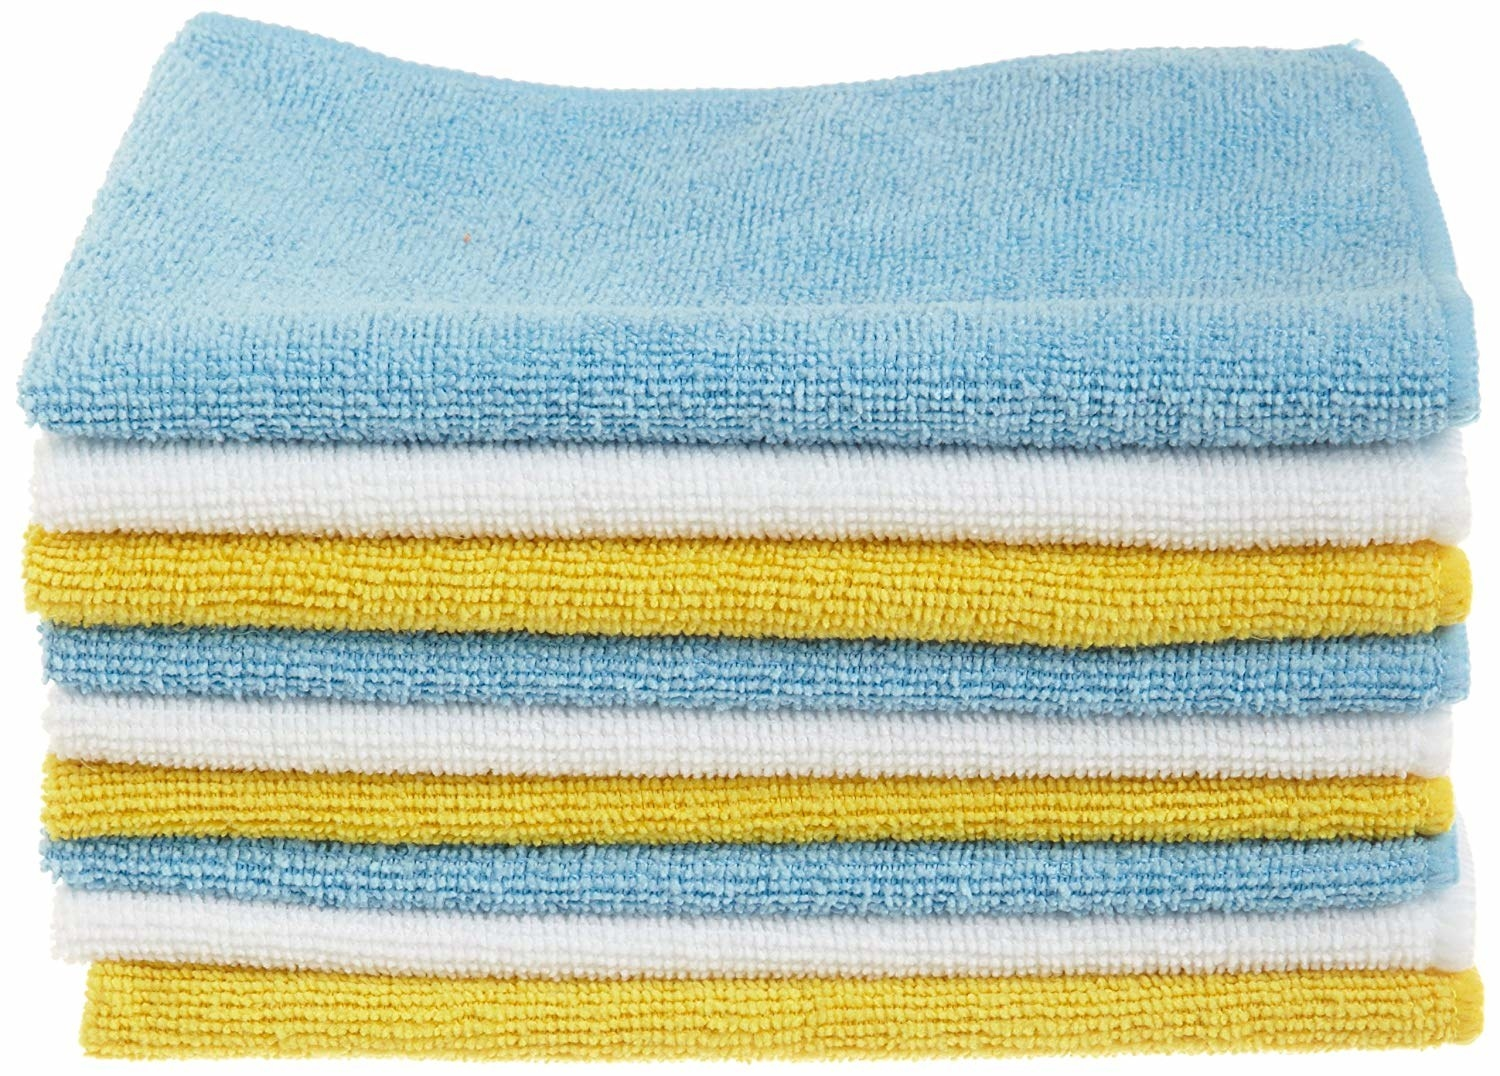 a stack of yellow, white, and light blue wash cloths